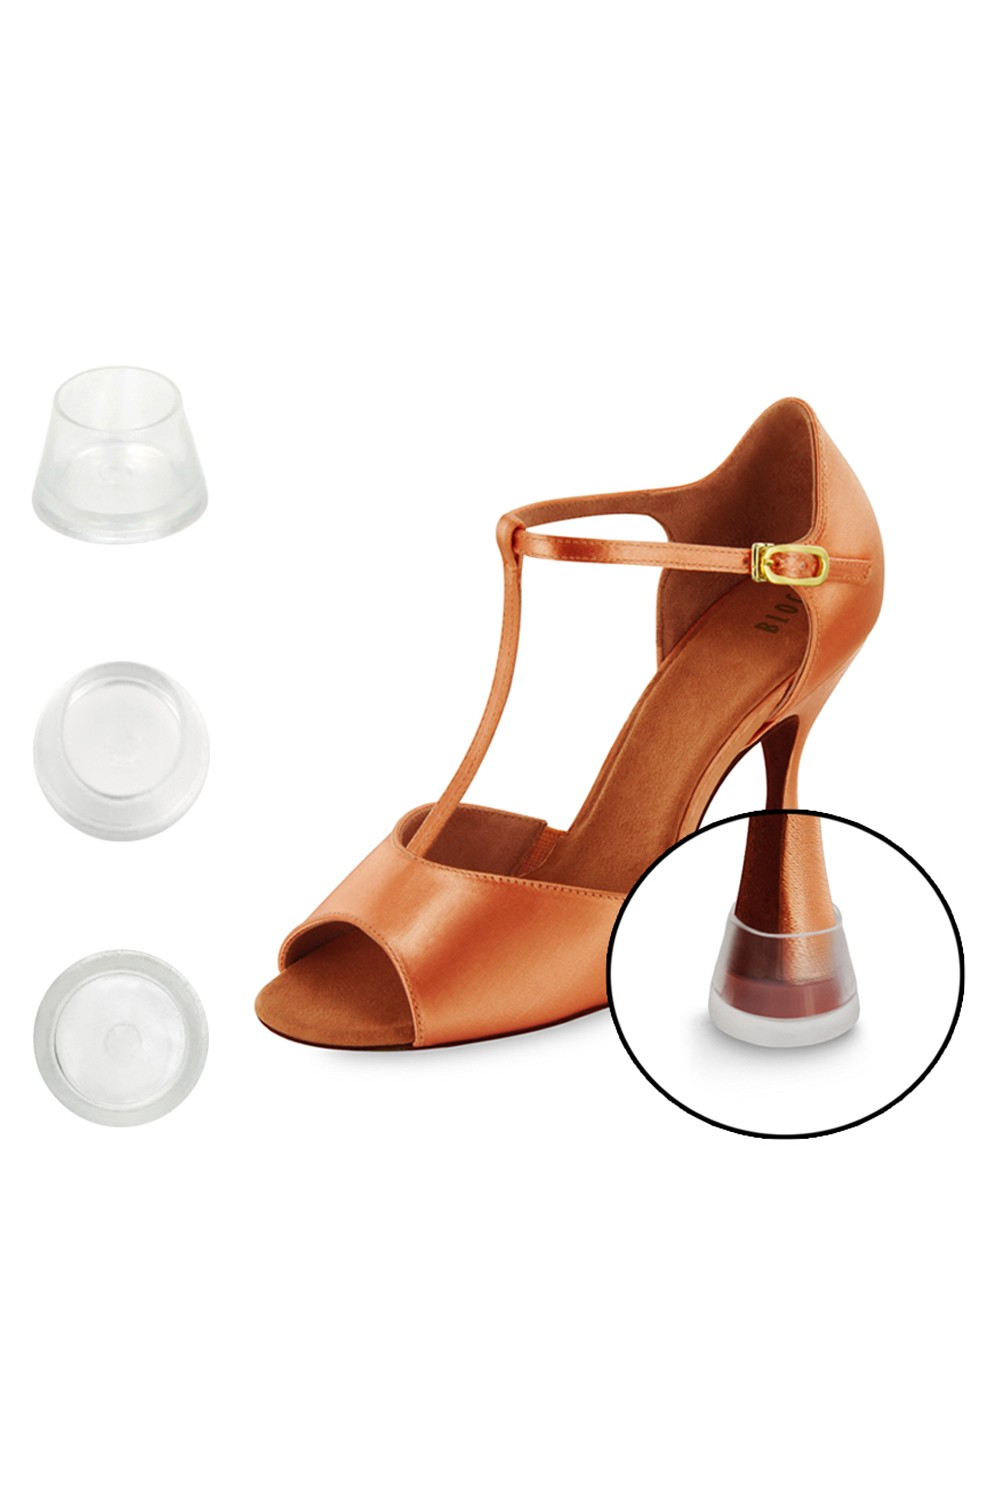 Round 8cm Latin Shoe Heel Protector Dance Shoes Accessories